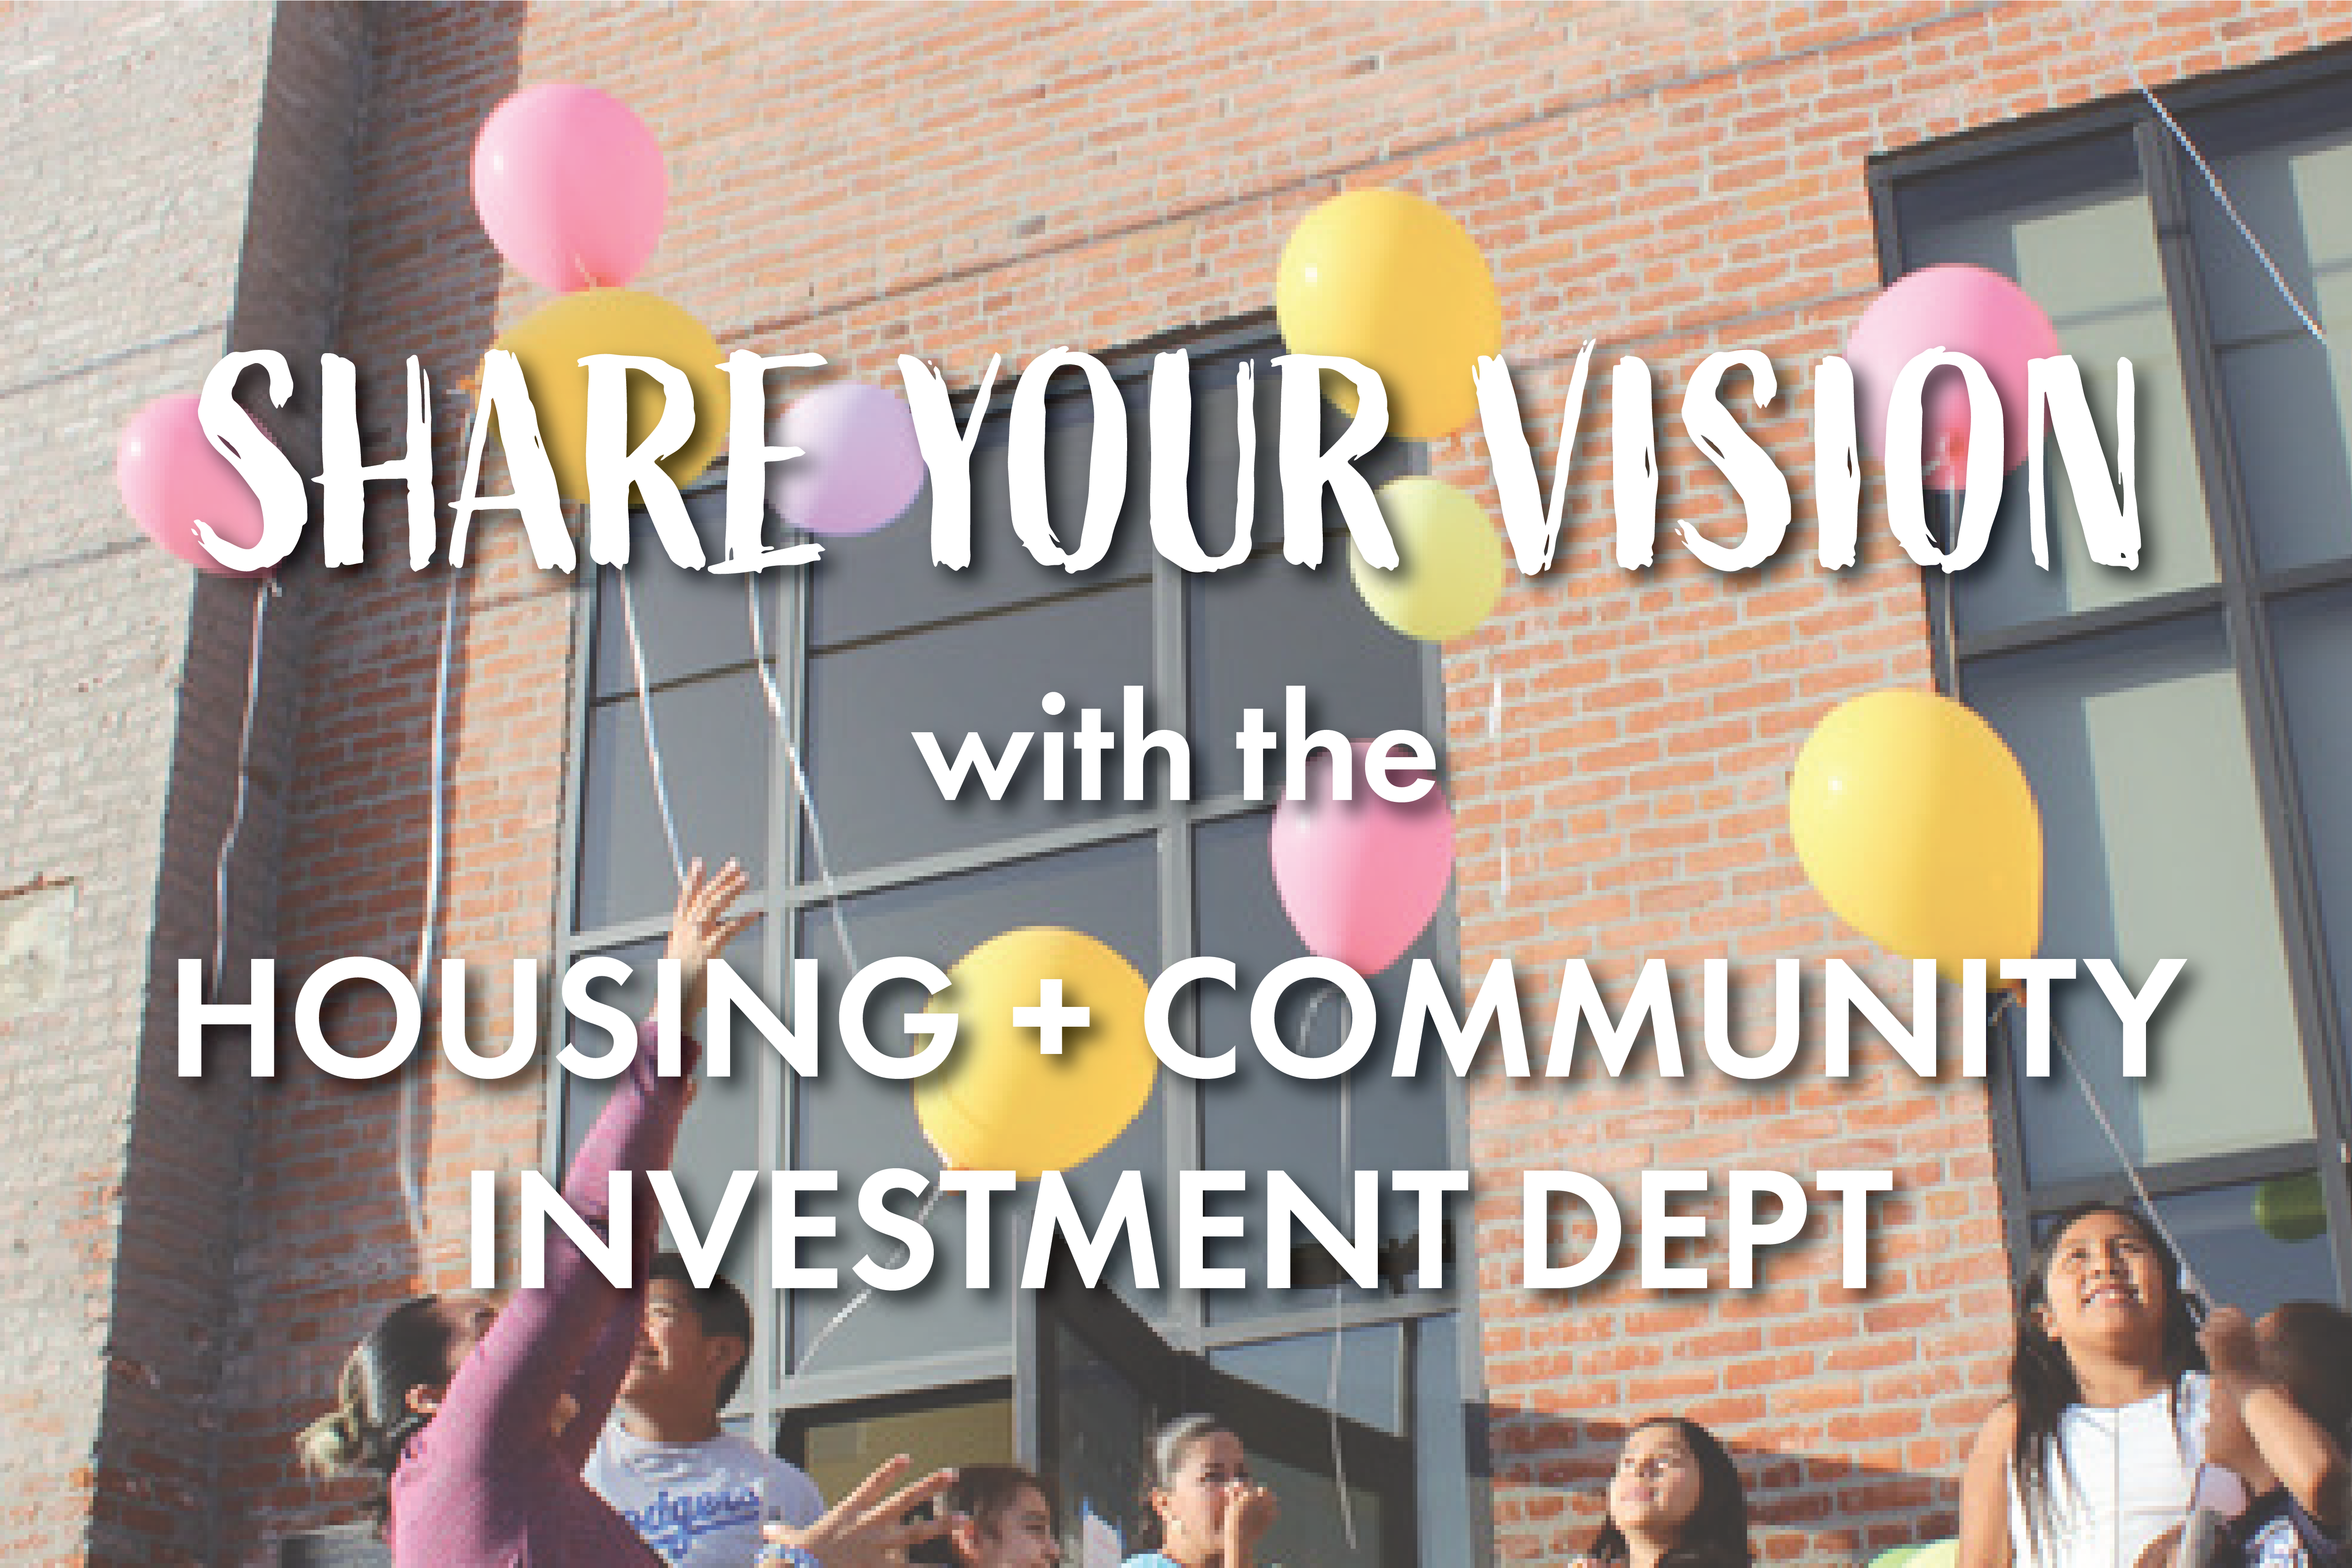 Share Your Vision with the Housing + Community Investment